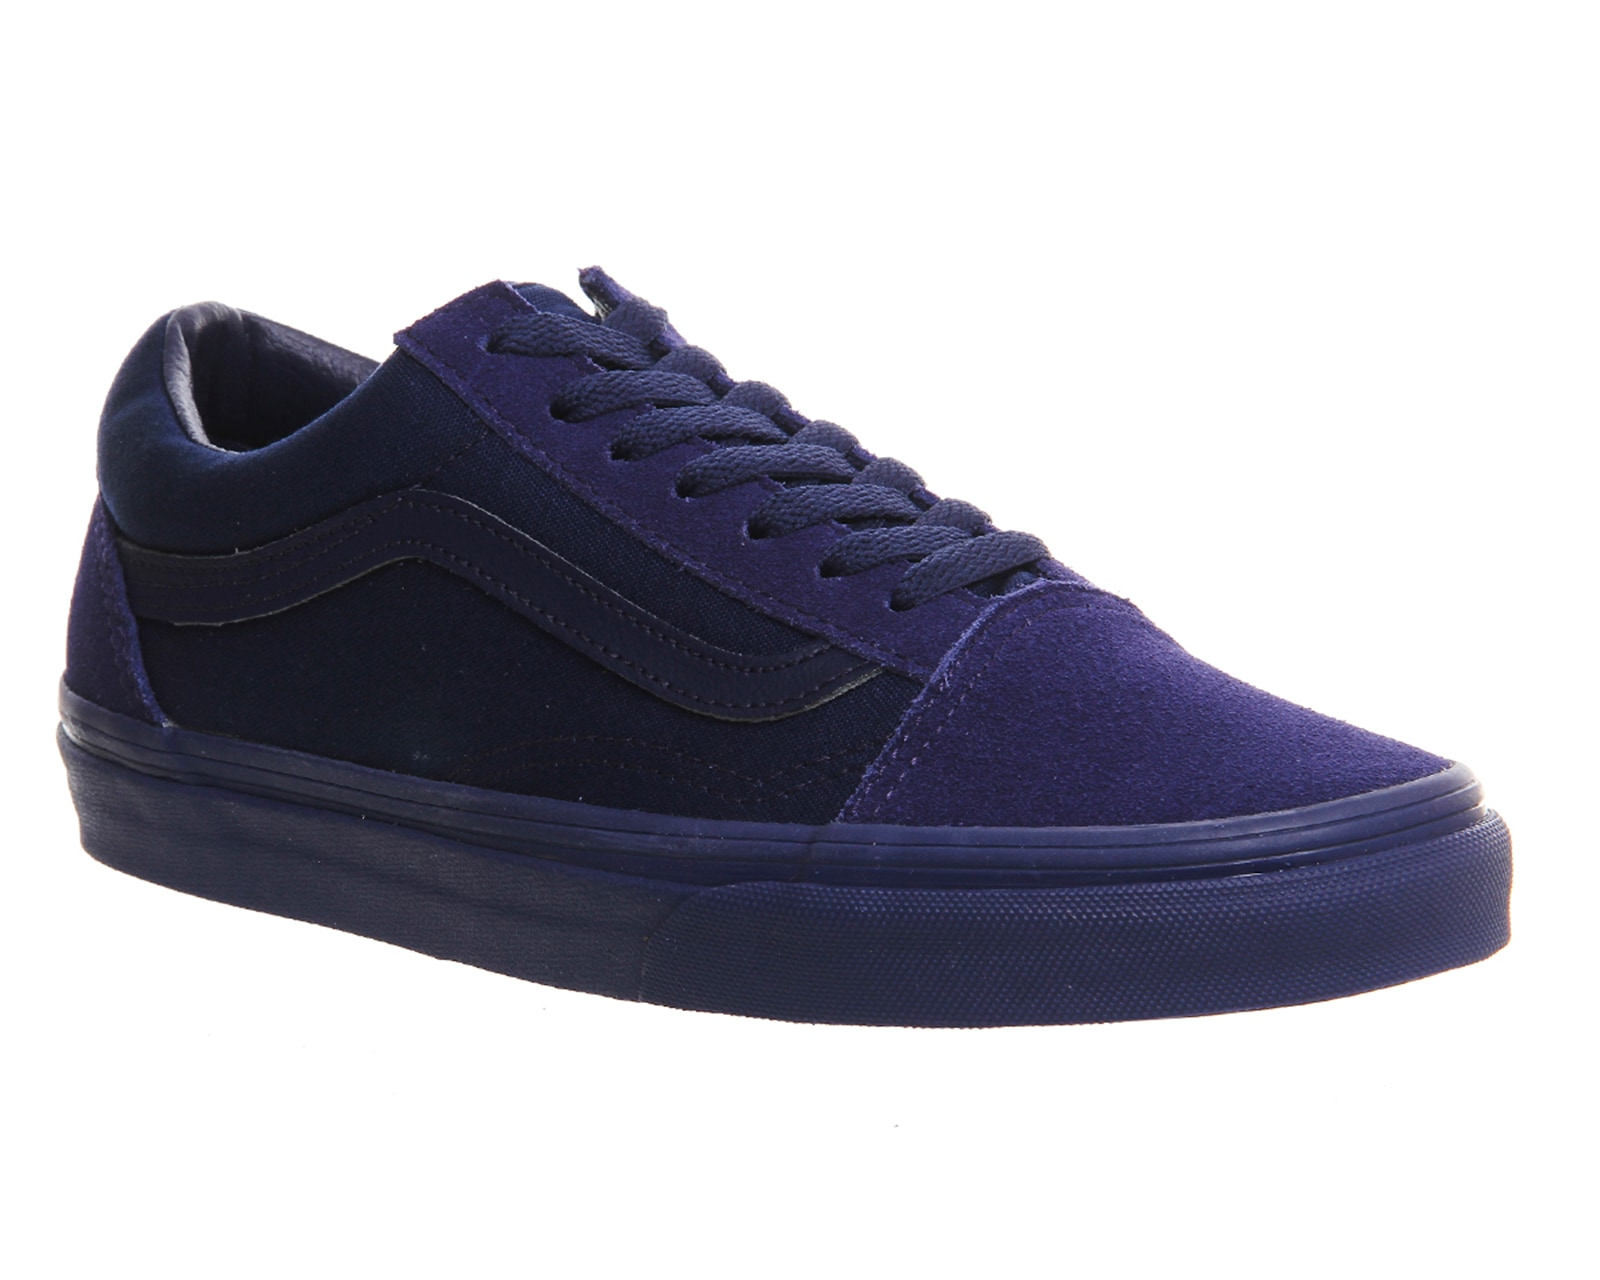 mens vans old skool blue depths mono trainers shoes ebay. Black Bedroom Furniture Sets. Home Design Ideas